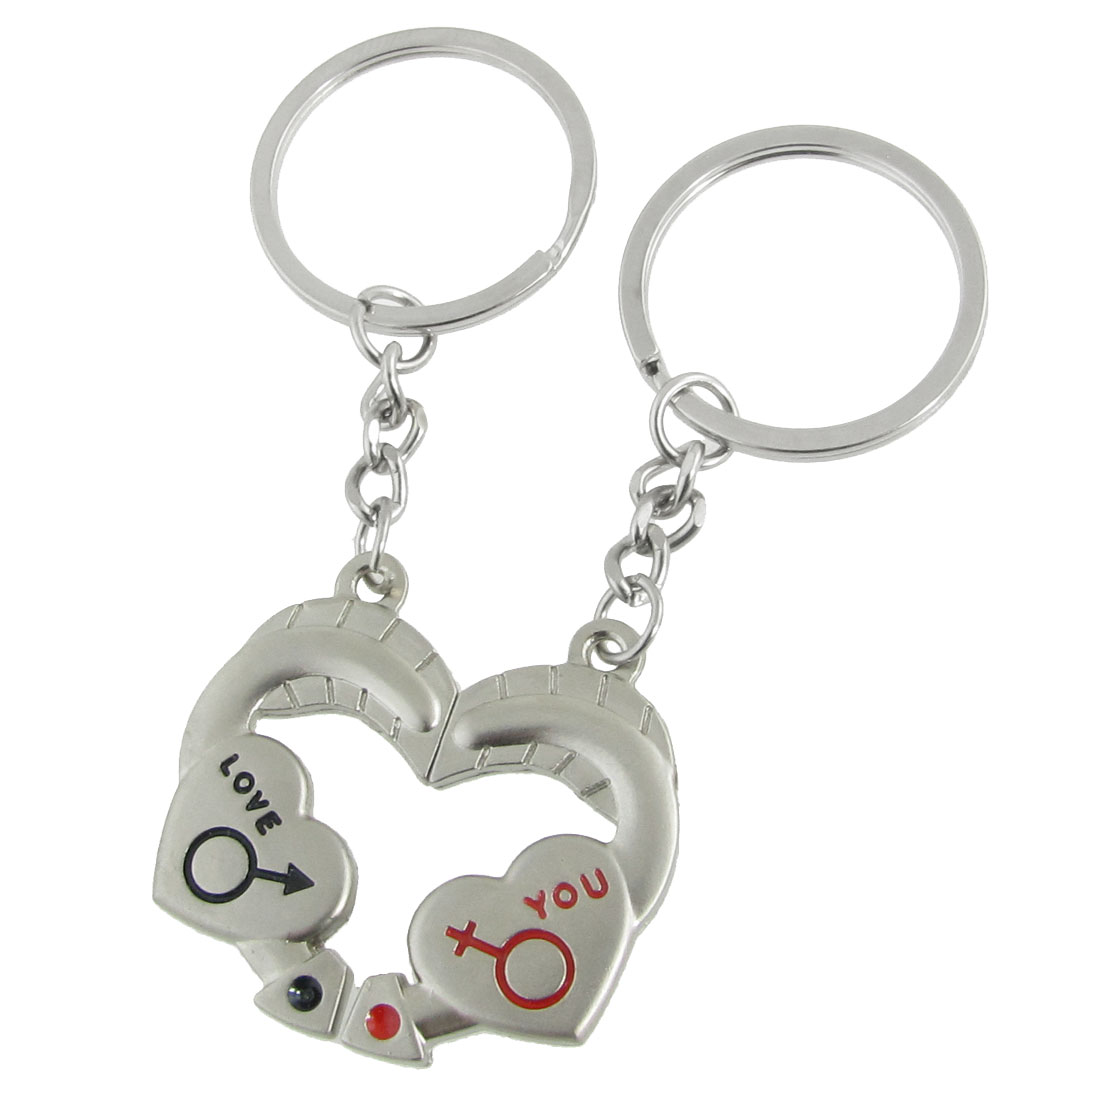 LOVE YOU Heart Shape Key Chain Key Ring for Couples 2 Pcs